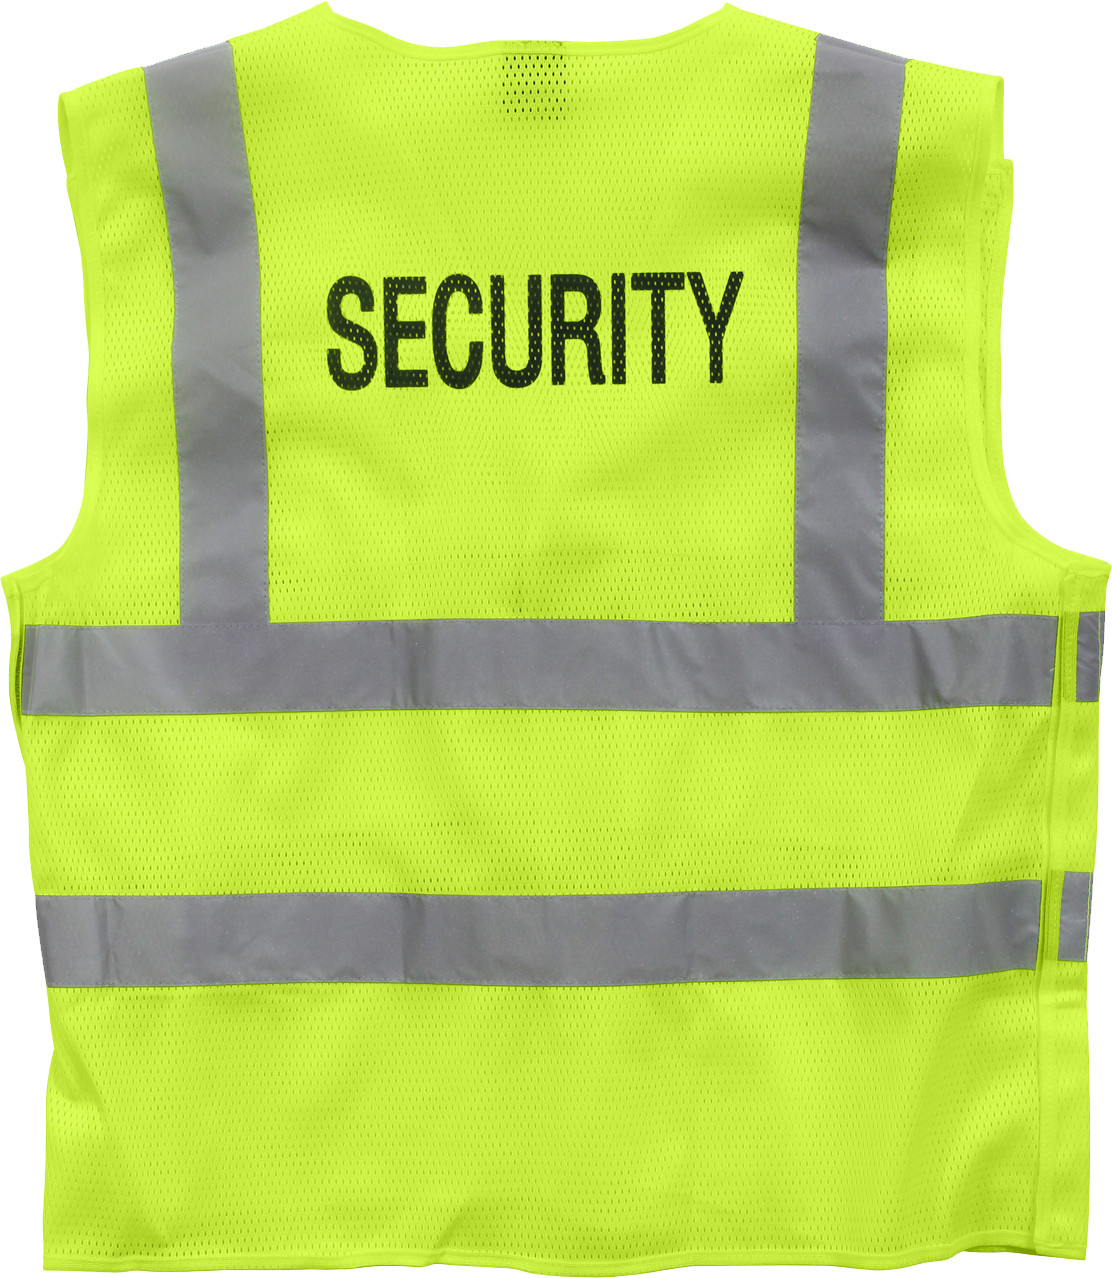 cd8dad3ead2e6 Safety Green Hi-Visibility 5 Point Tactical Breakaway Protective SECURITY Safety  Vest